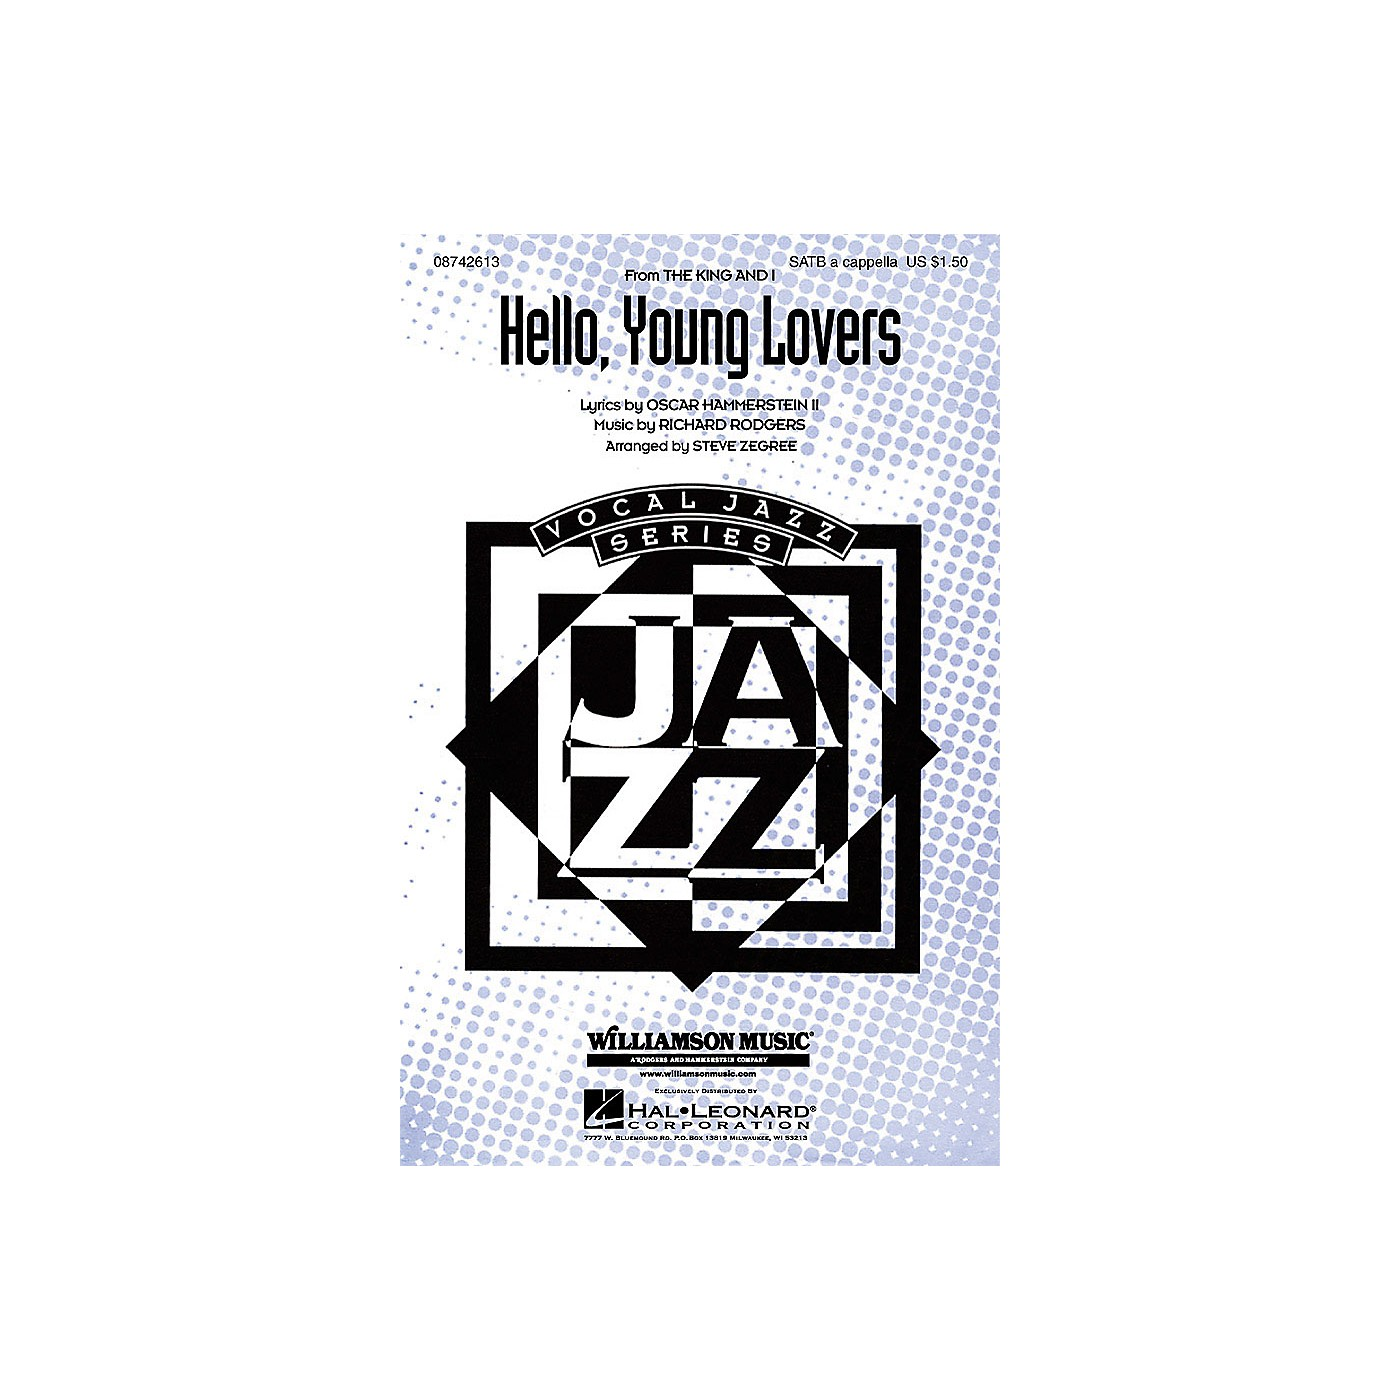 Hal Leonard Hello, Young Lovers (from The King and I) SATB a cappella arranged by Steve Zegree thumbnail